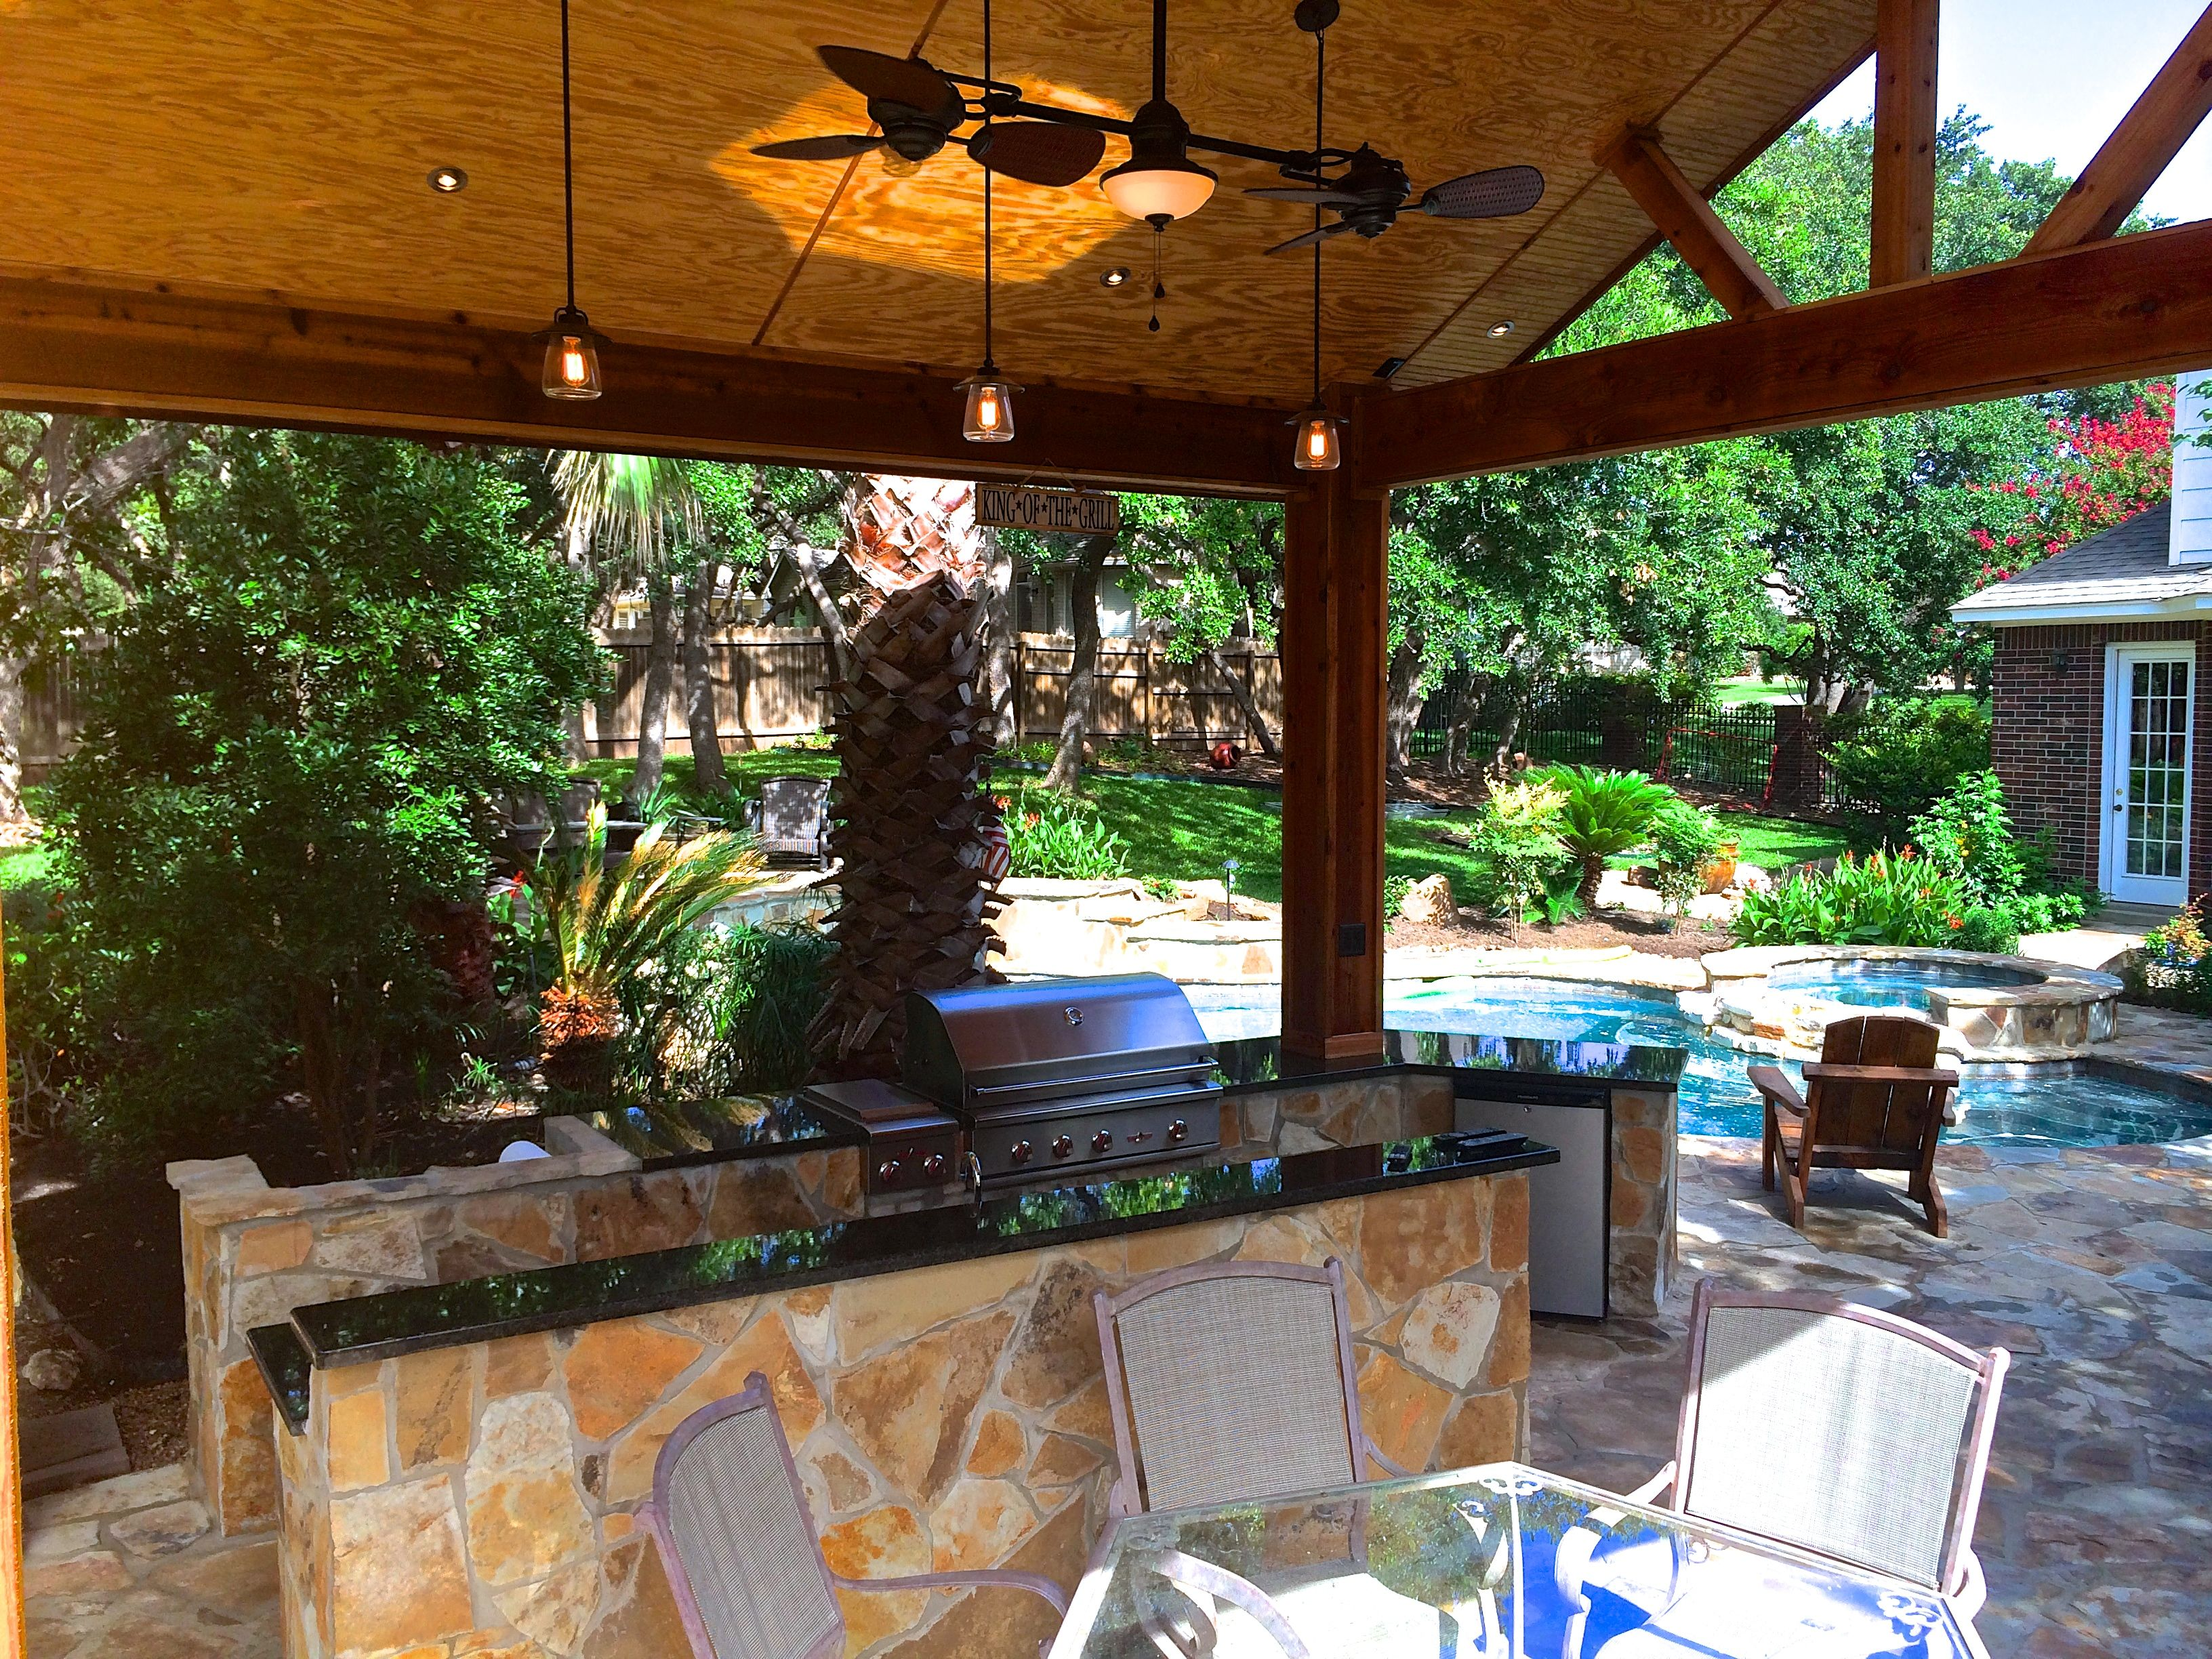 Pool Patio With Cabana And Stone Outdoor Kitchen Pool Patio Outdoor Living Areas Outdoor